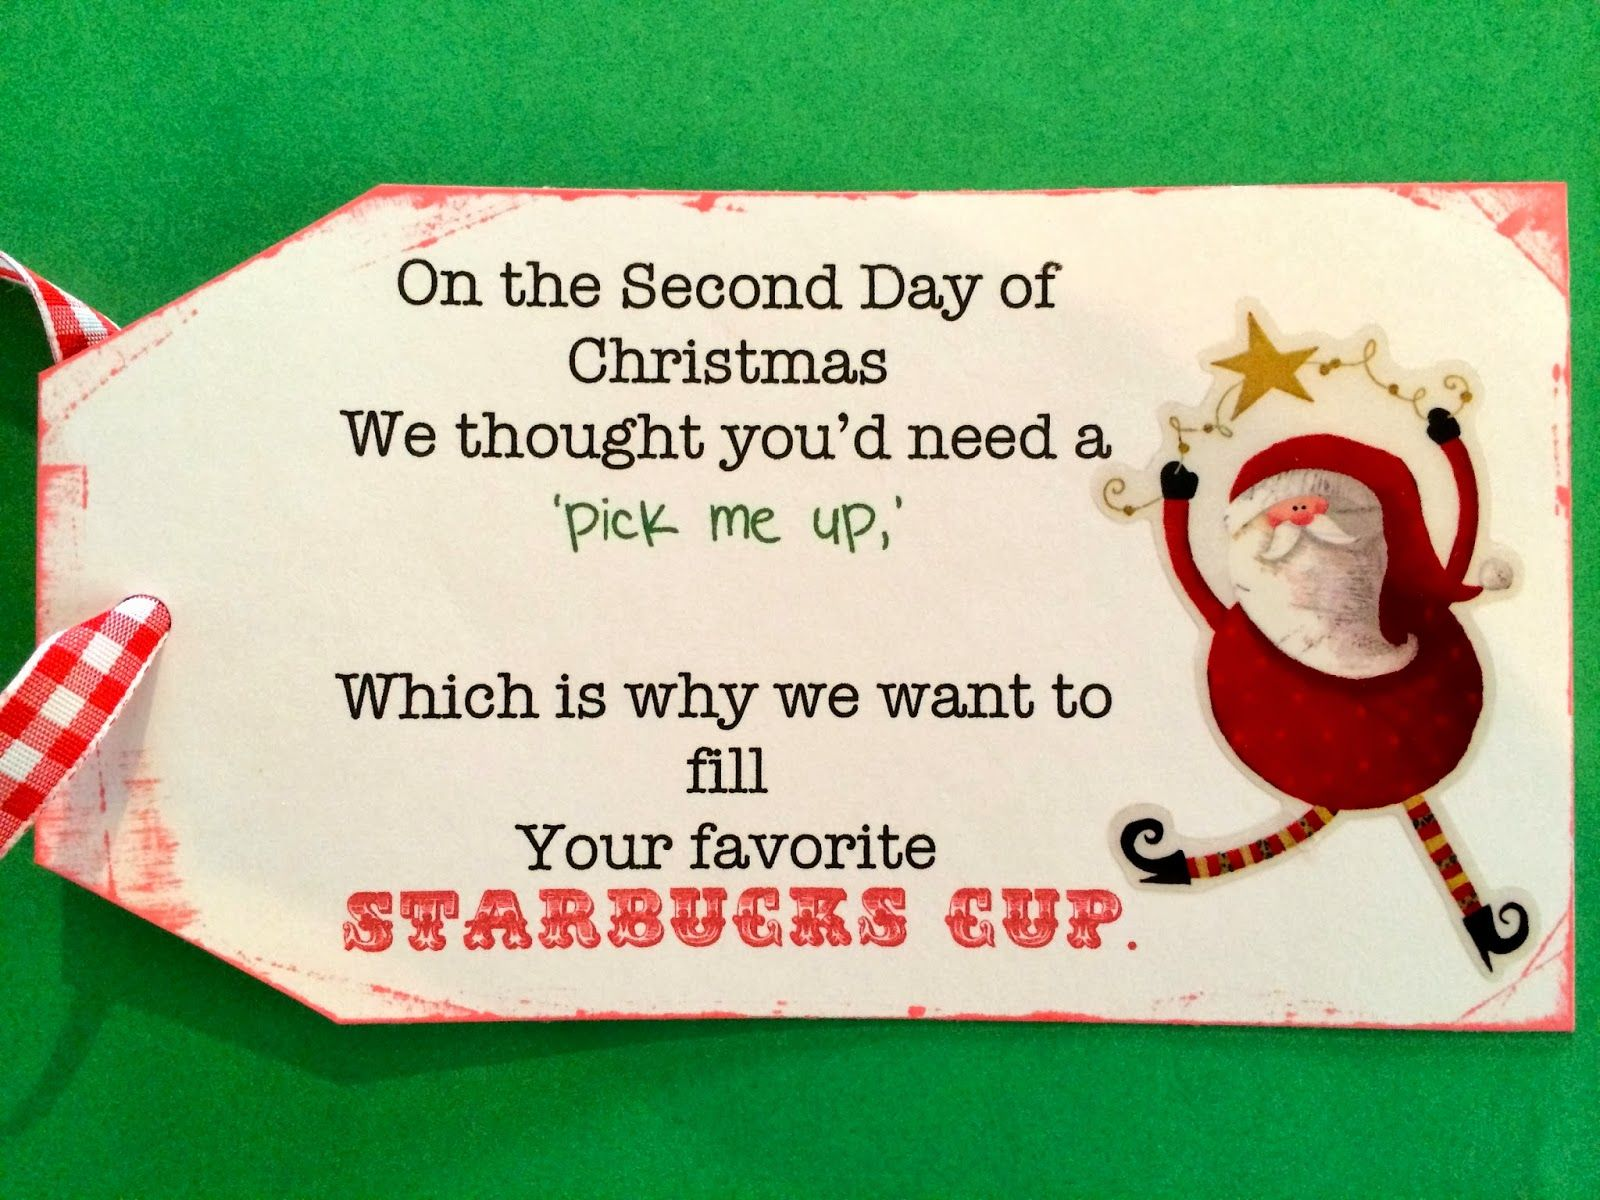 Today for DAY 2 the kids brought their teachers: A little gift card ...